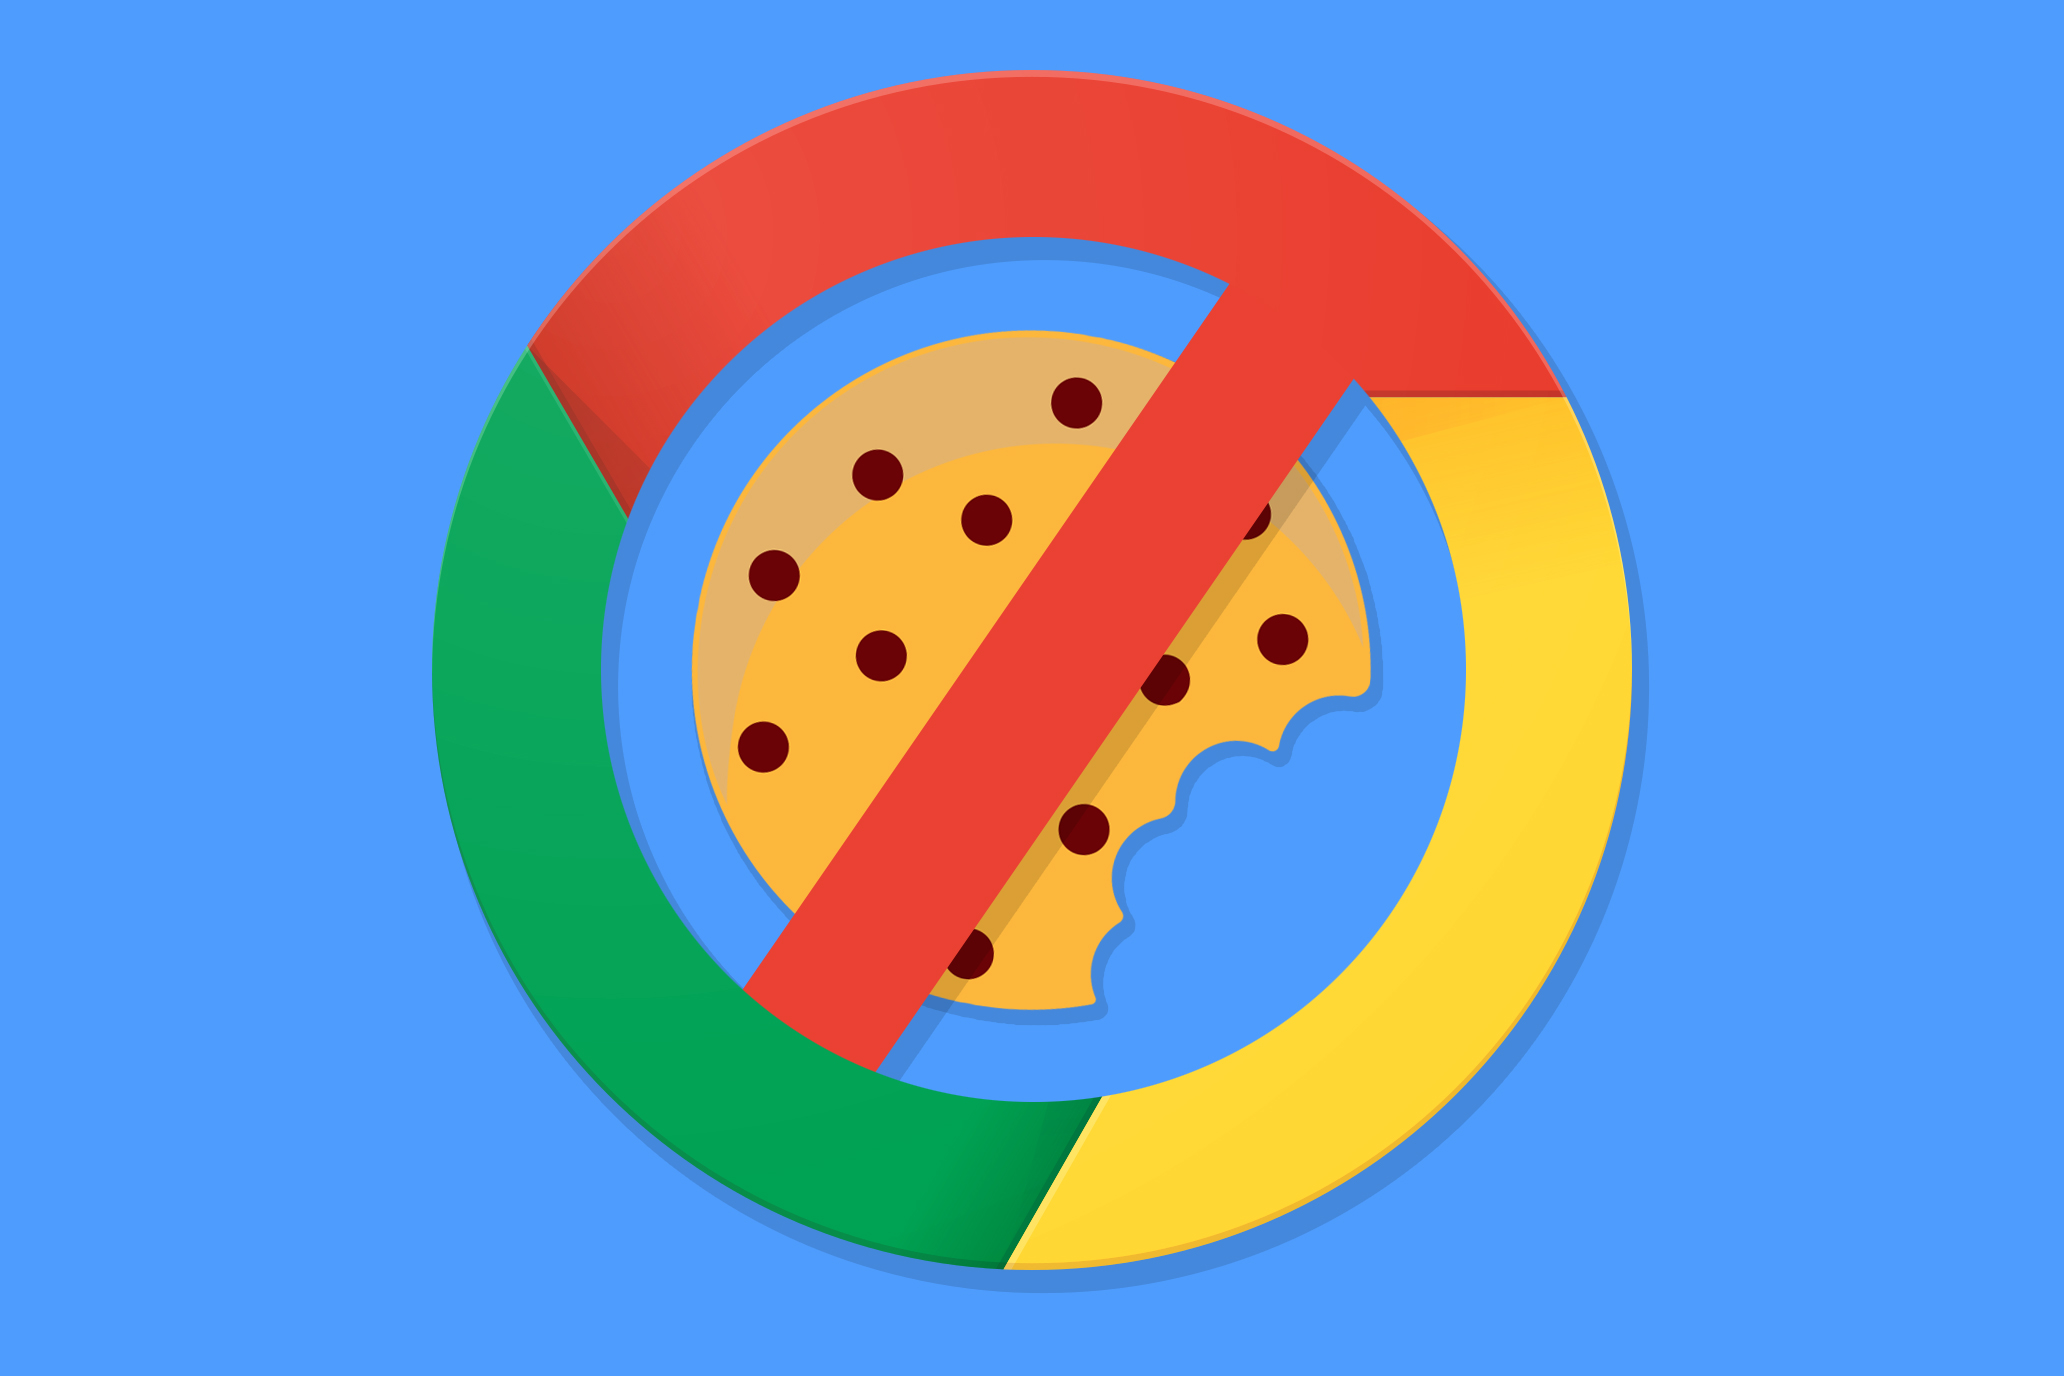 Google is moving to eliminate third-party cookies from its popular Chrome browser in two years, as increasing privacy regulation and steep competition from rivals such as Apple Safari continue to intensify.